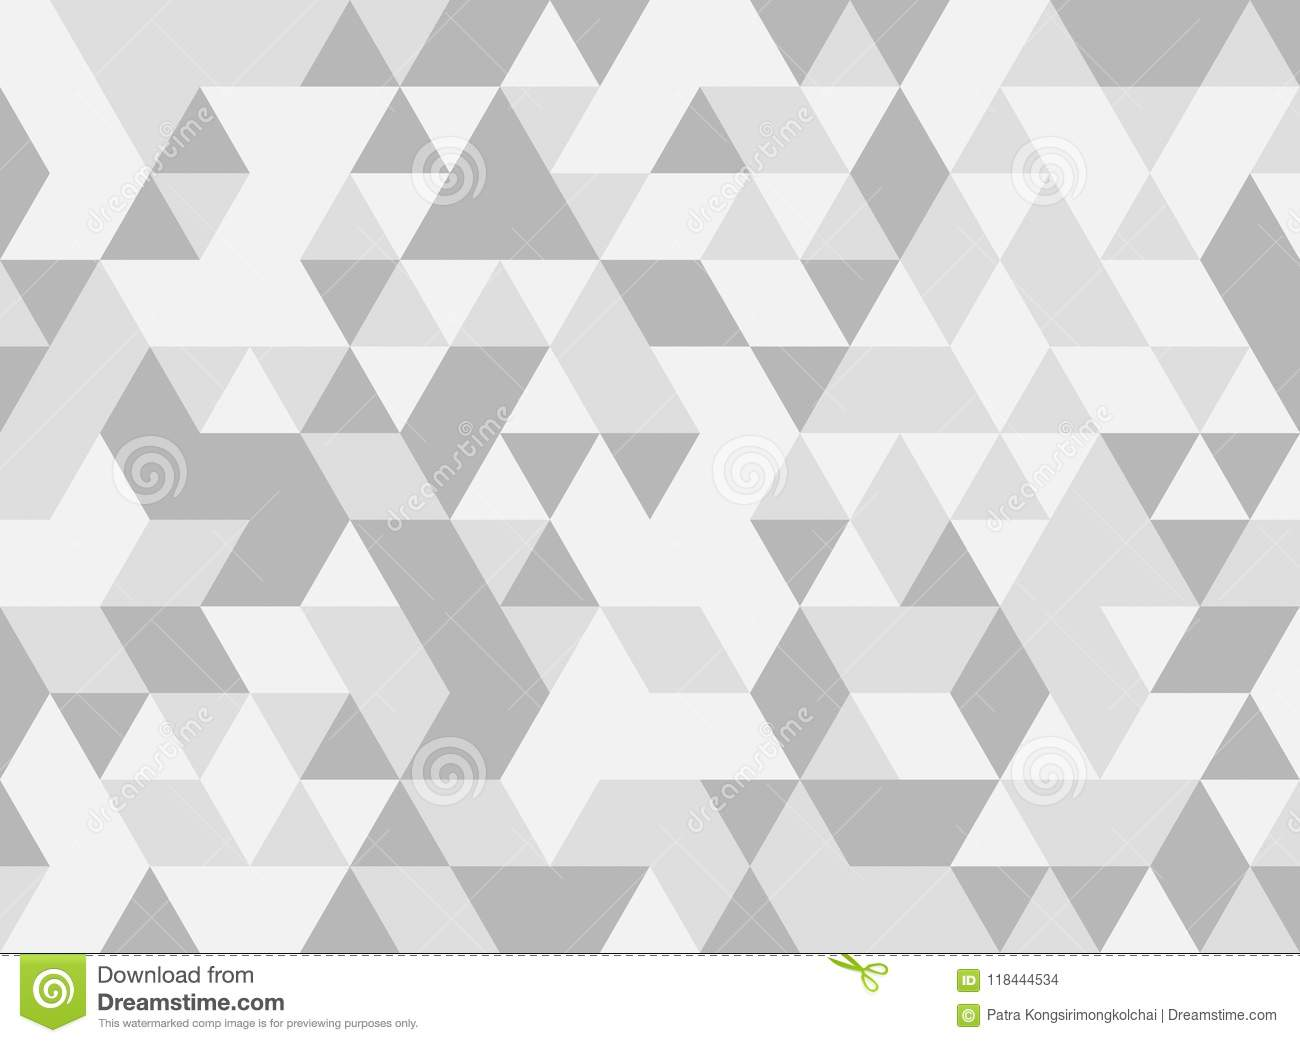 White and grey triangle tiles texture, seamless pattern